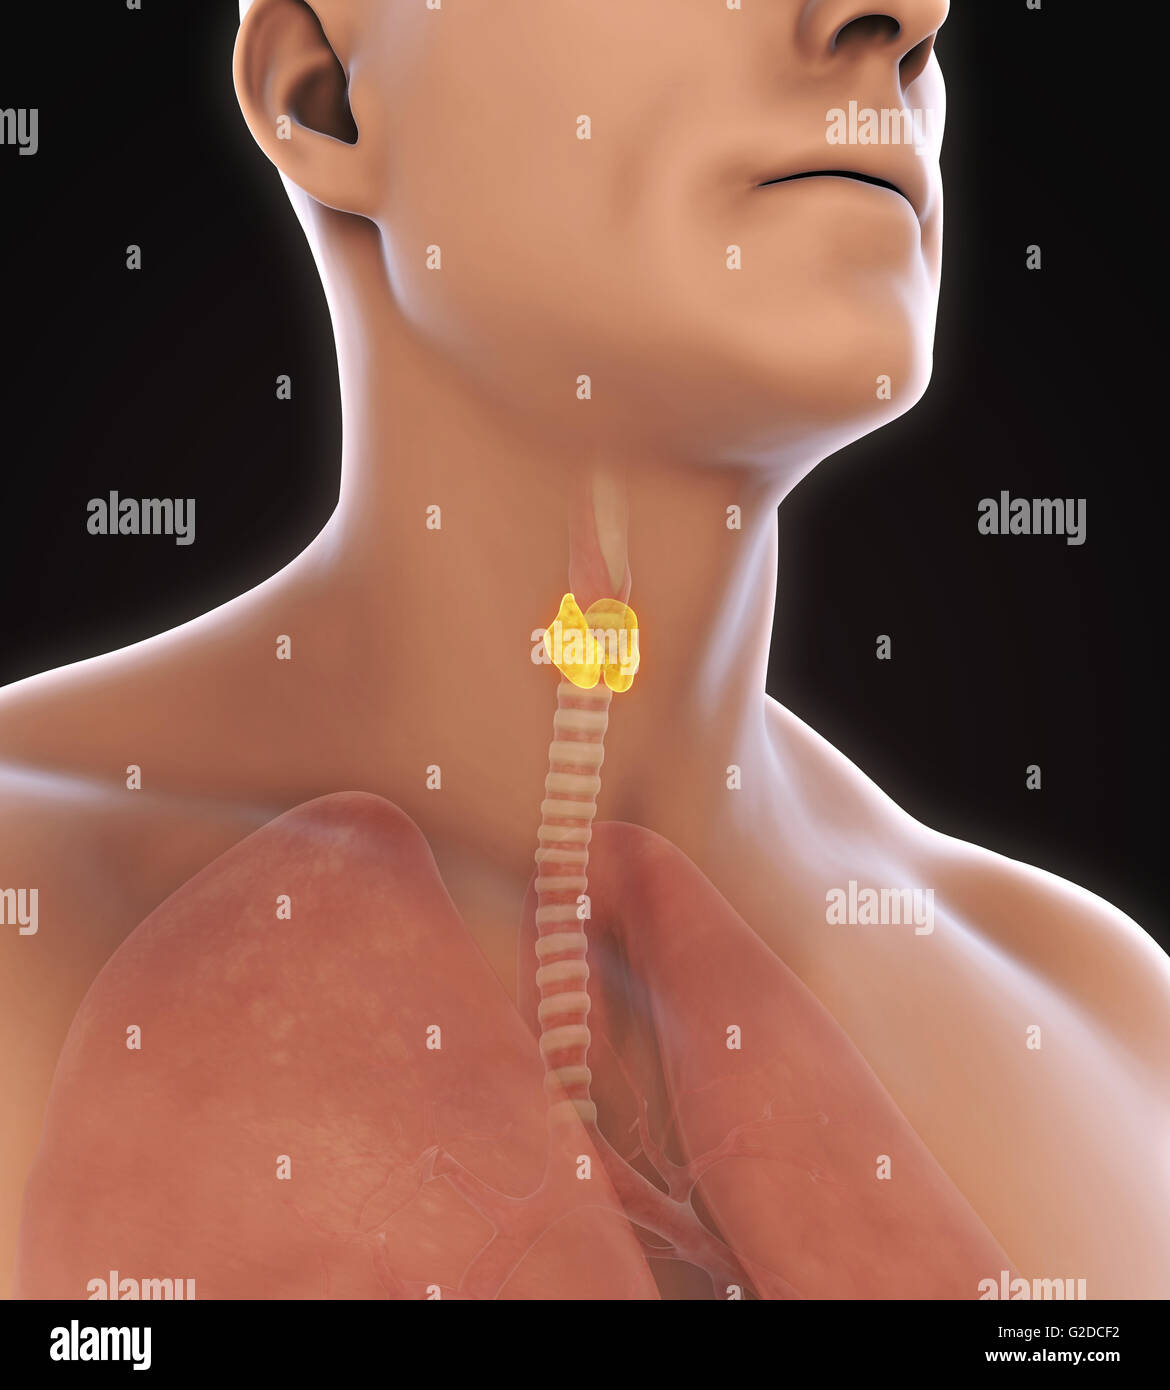 Human Thyroid Stockfotos & Human Thyroid Bilder - Alamy